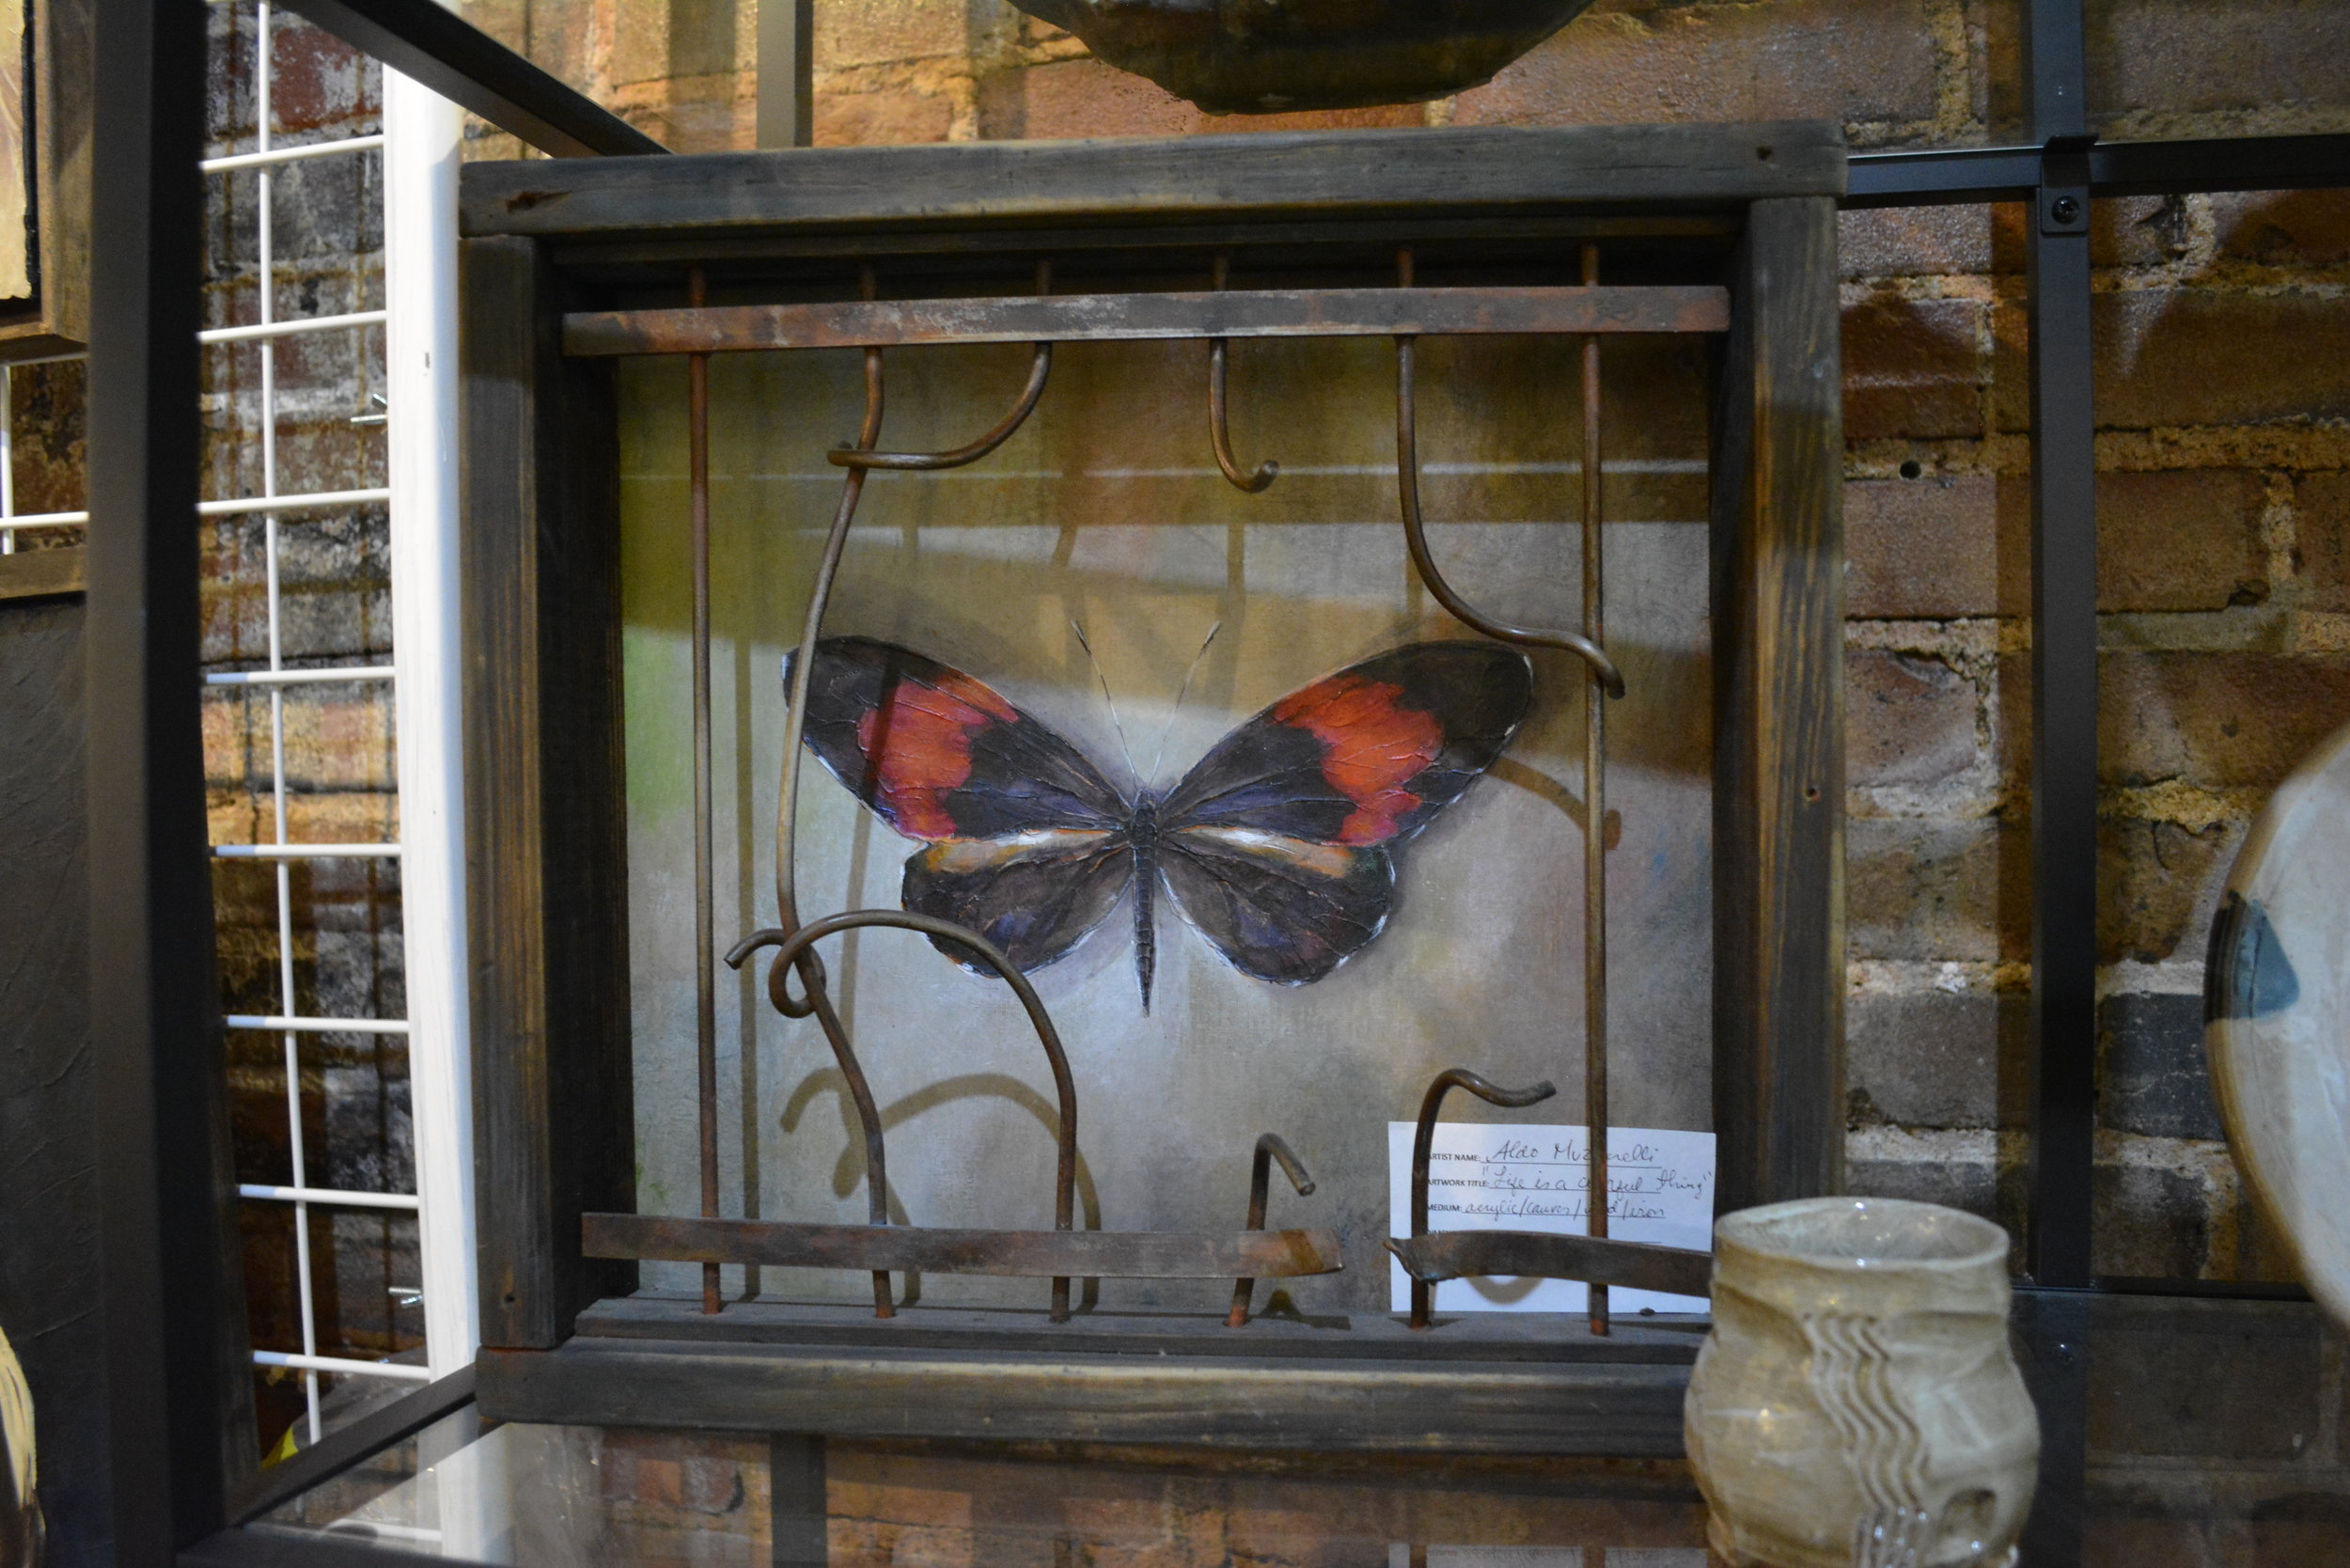 Aldo Muzzarelli - Acrylic, Canvas, Wood and Iron. Butterfly paintings in handmade frames some made with hand-made  iron rods presenting a gate/cage for the butterfly.